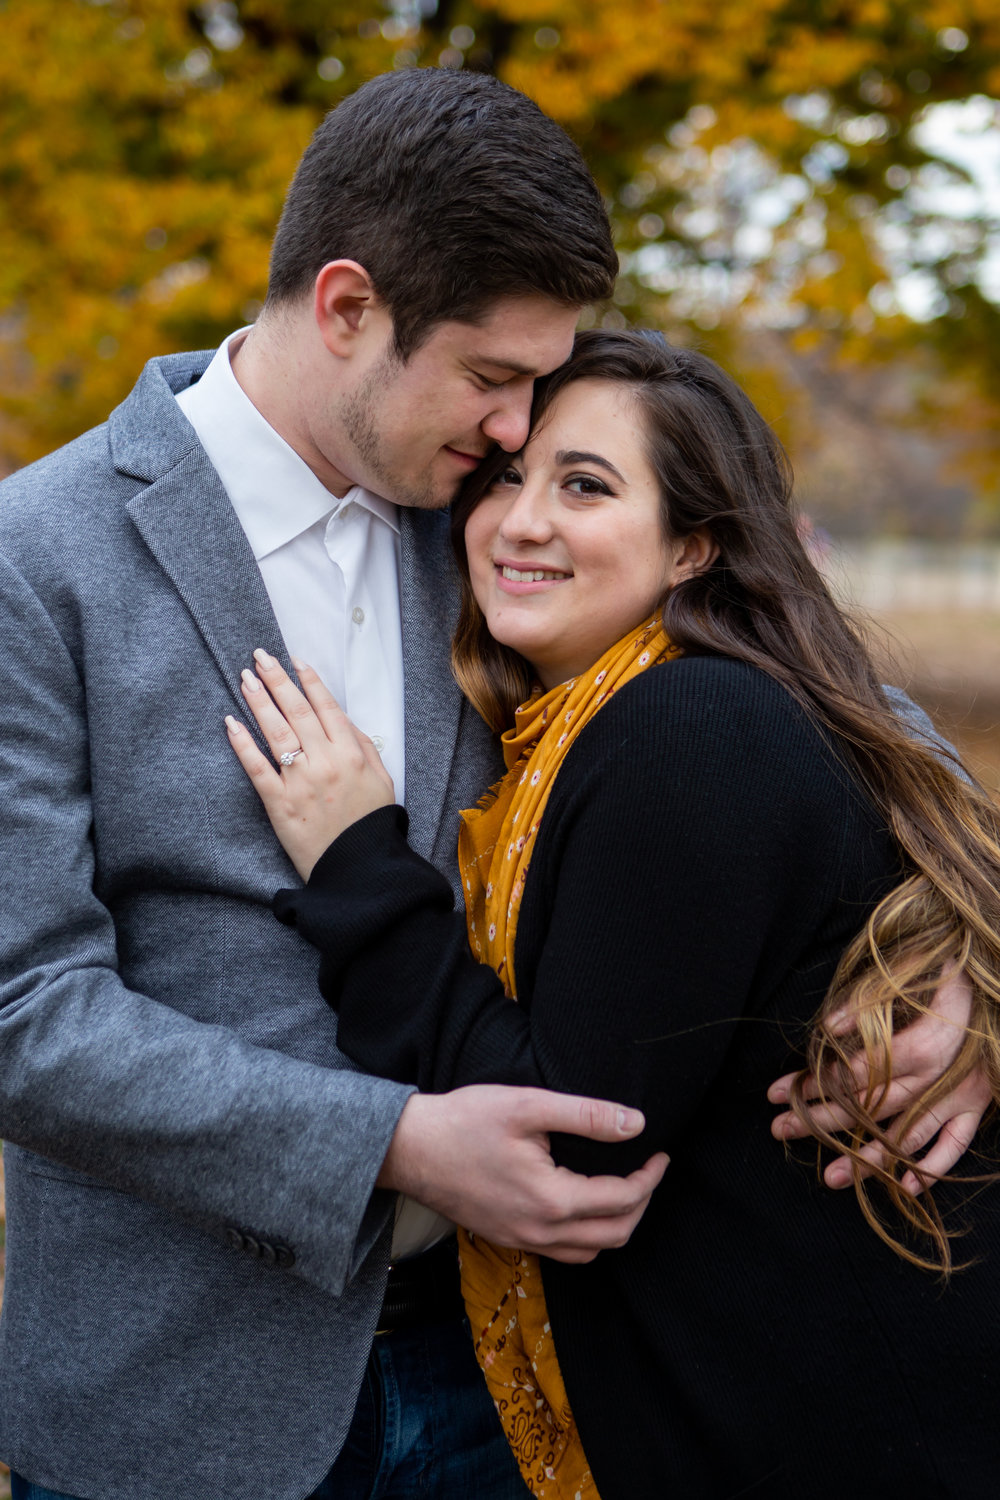 Kate-Alison-Photography-Prospect-Park-Brooklyn-Engagement-Session-Jenna-James-24.jpg